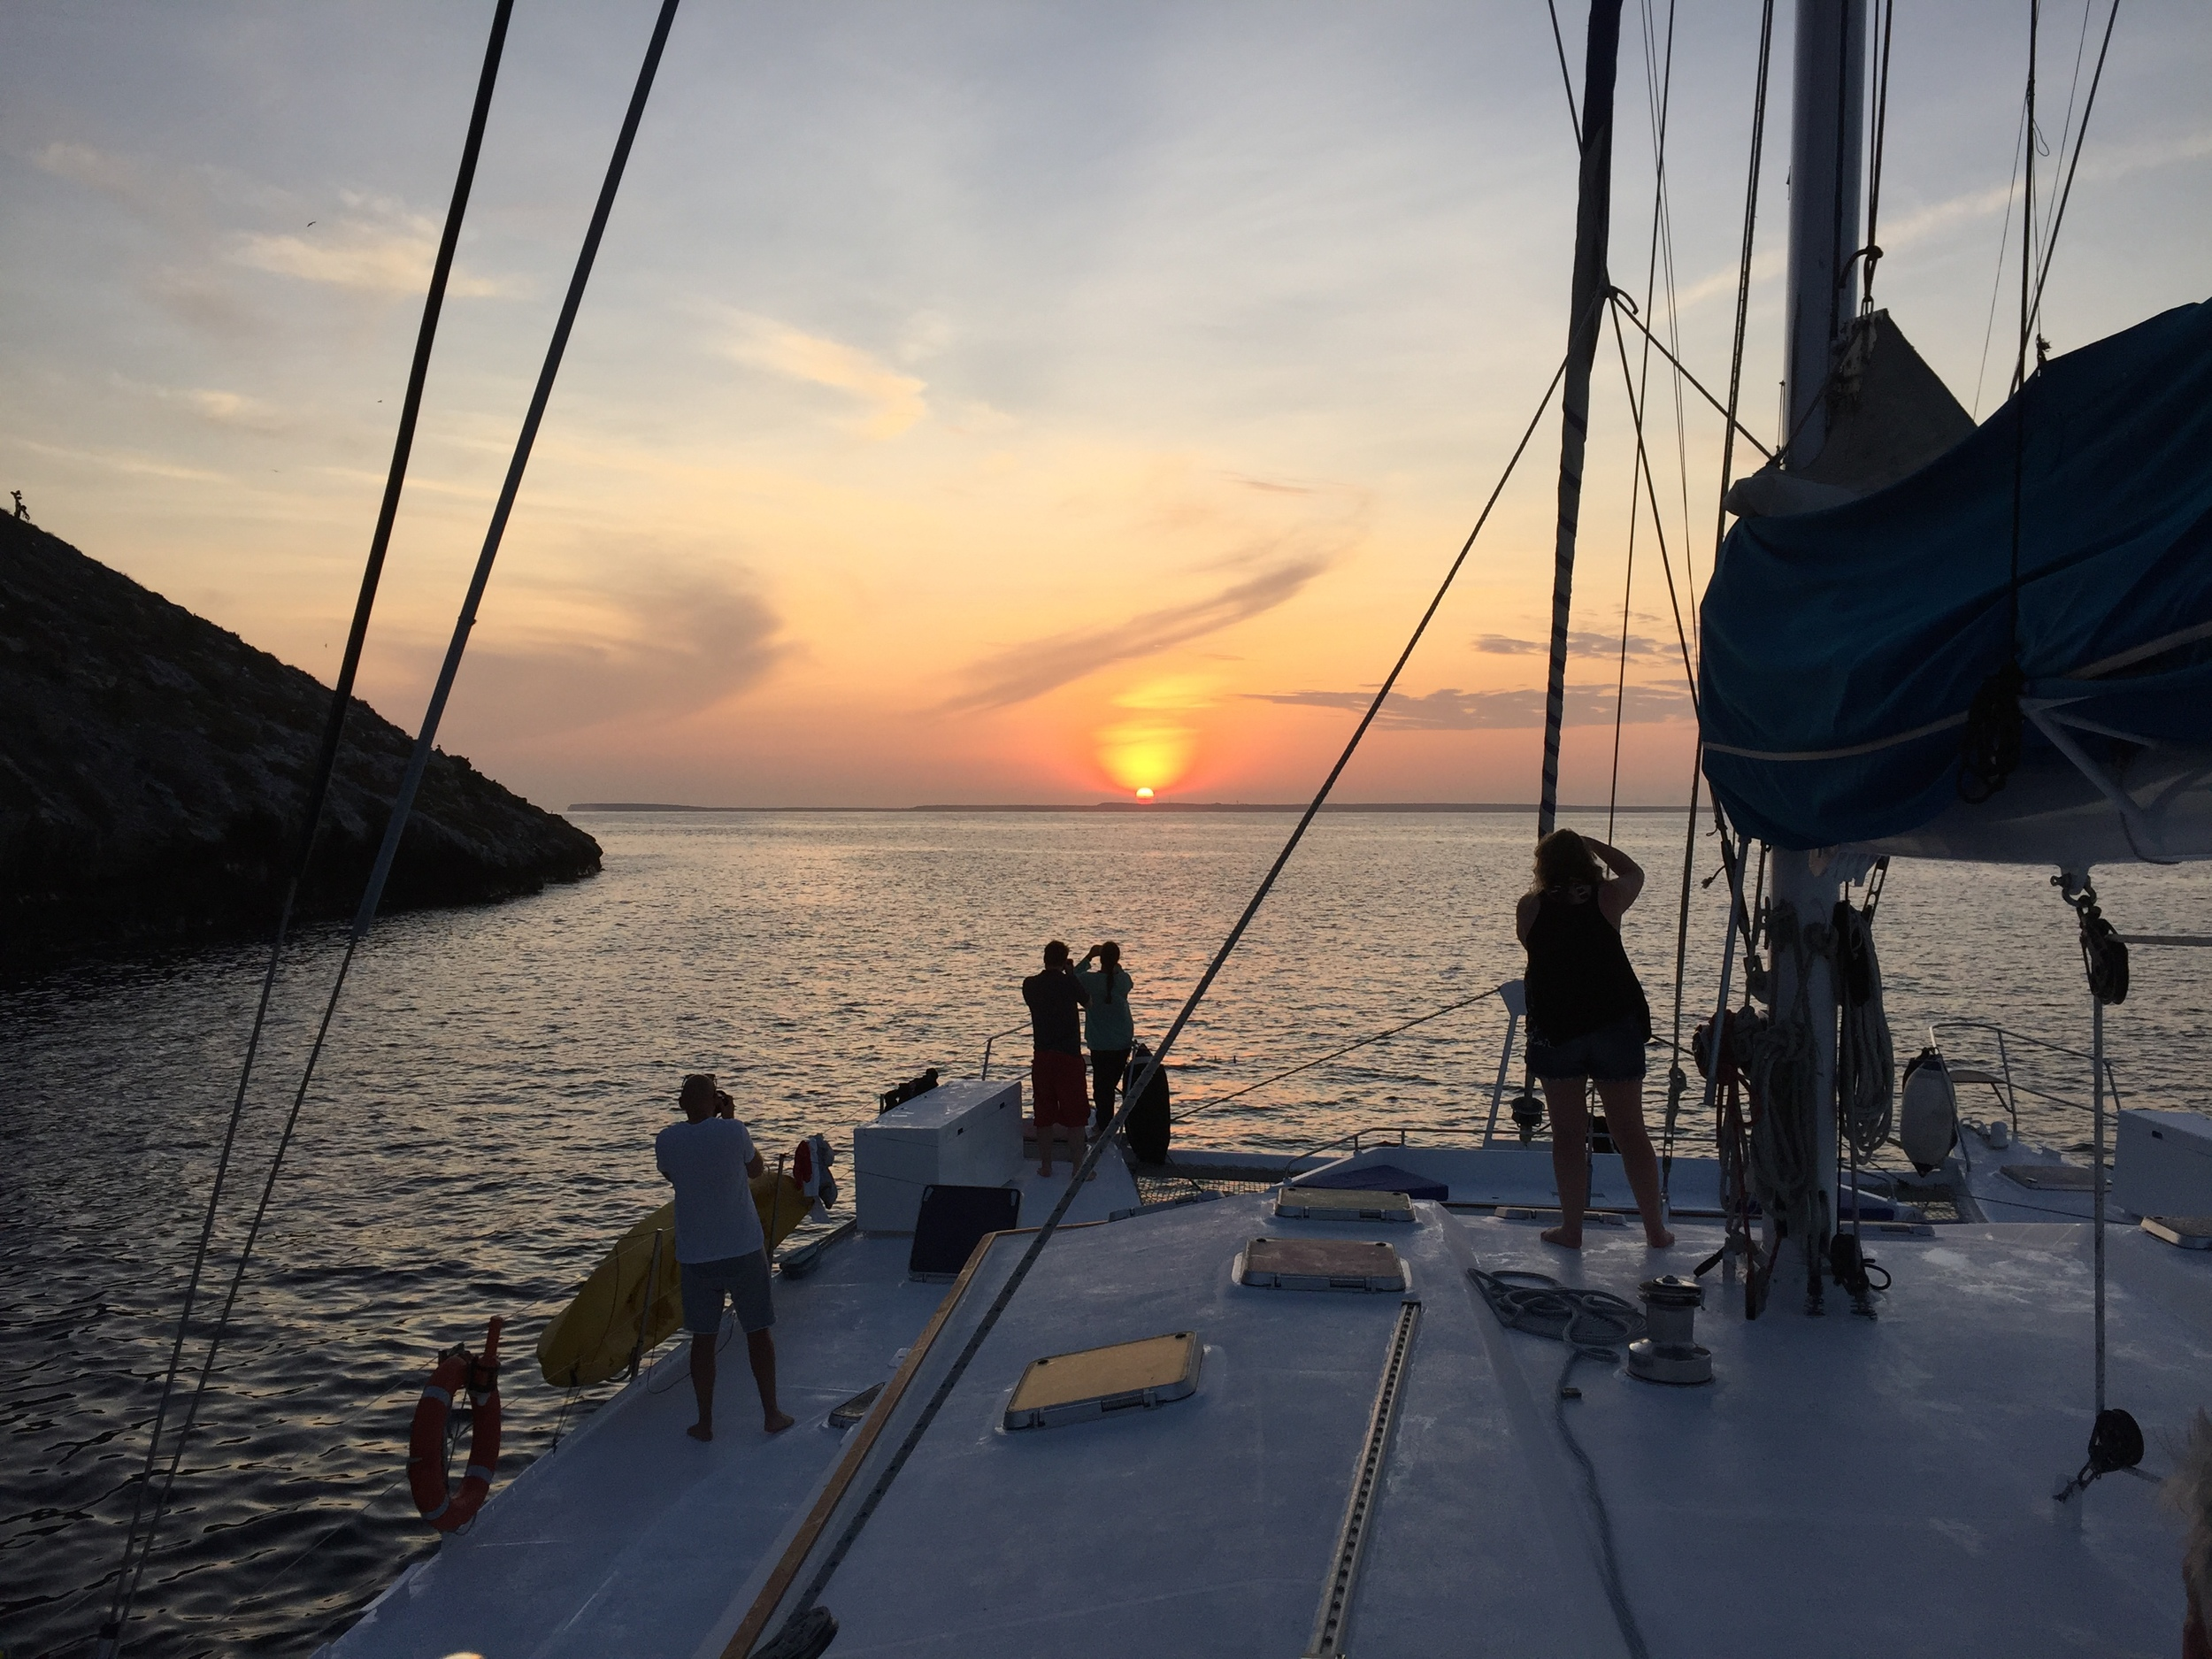 We circle Daphne Island at sunrise on the final day of our catamaran cruise. It was here that Peter and Rosemary Grant conducted their famous research about the Galapagos finches.